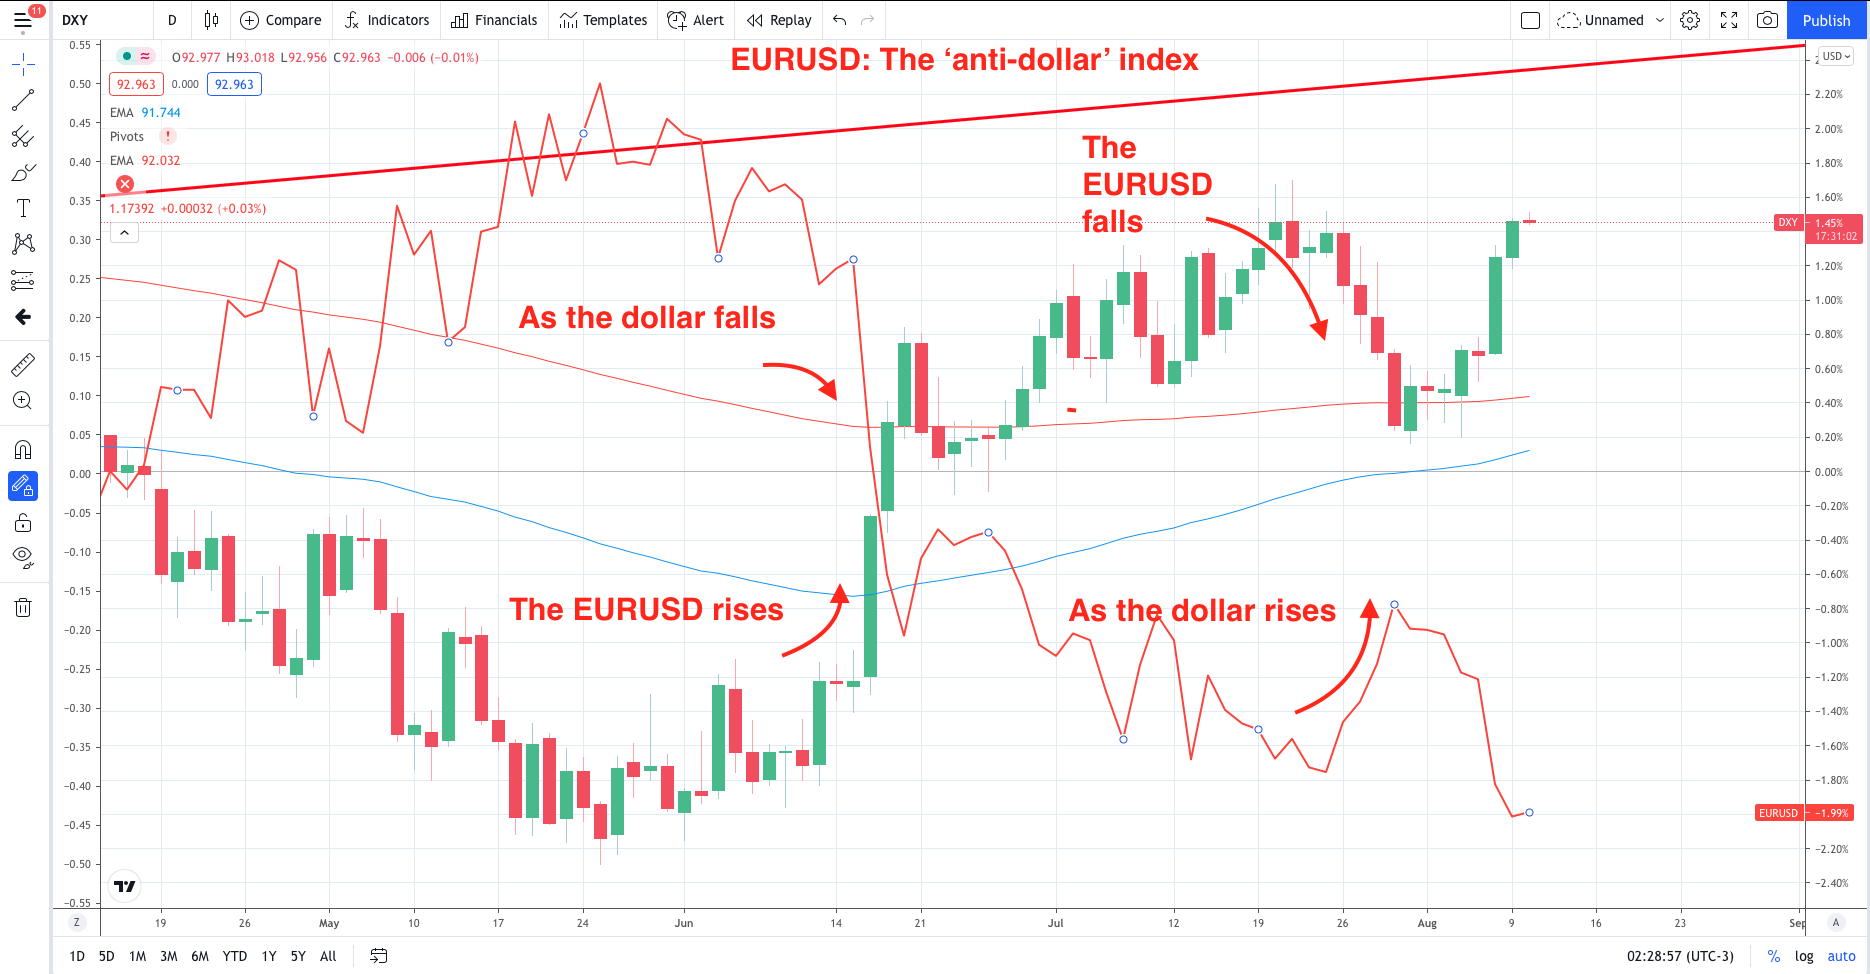 Euro's moving parts